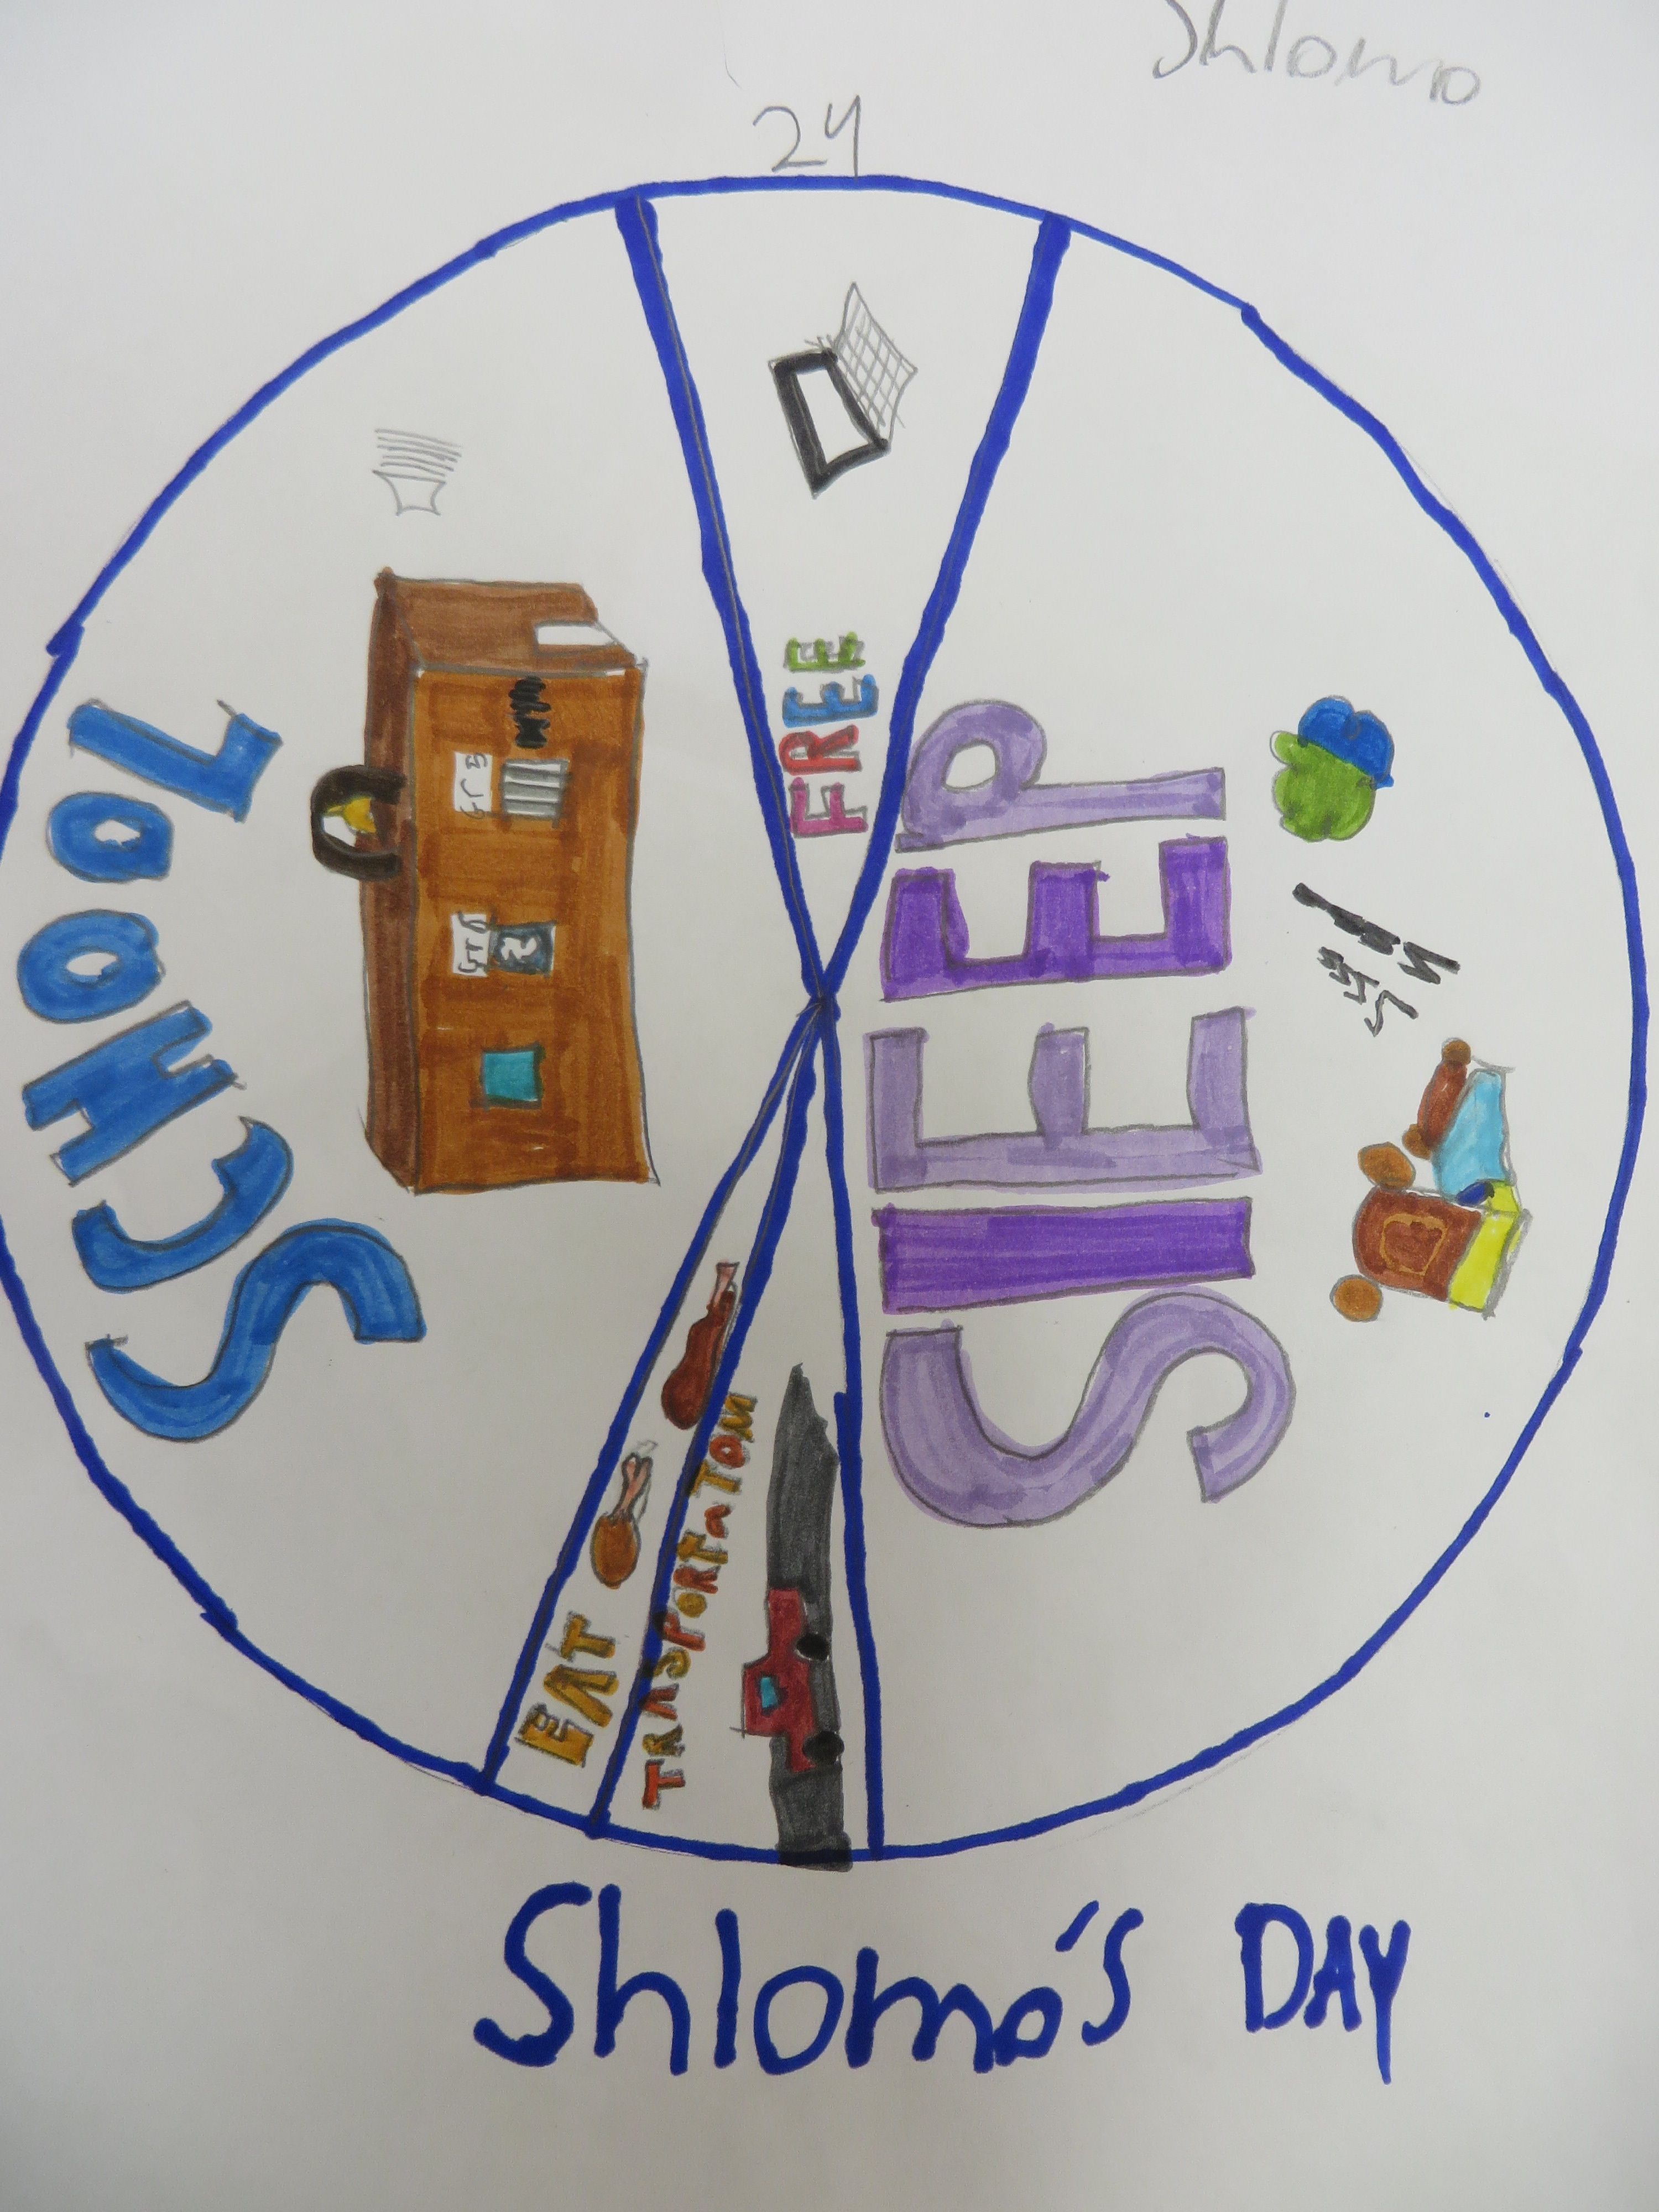 Grade 5 Pie Charts Circle Graphs Students Made A 24 Hour Pie Chart Of Their Day My Students Have 9 Hour School Days So Circle Graph Graphing School Days Circle graphs worksheets grade